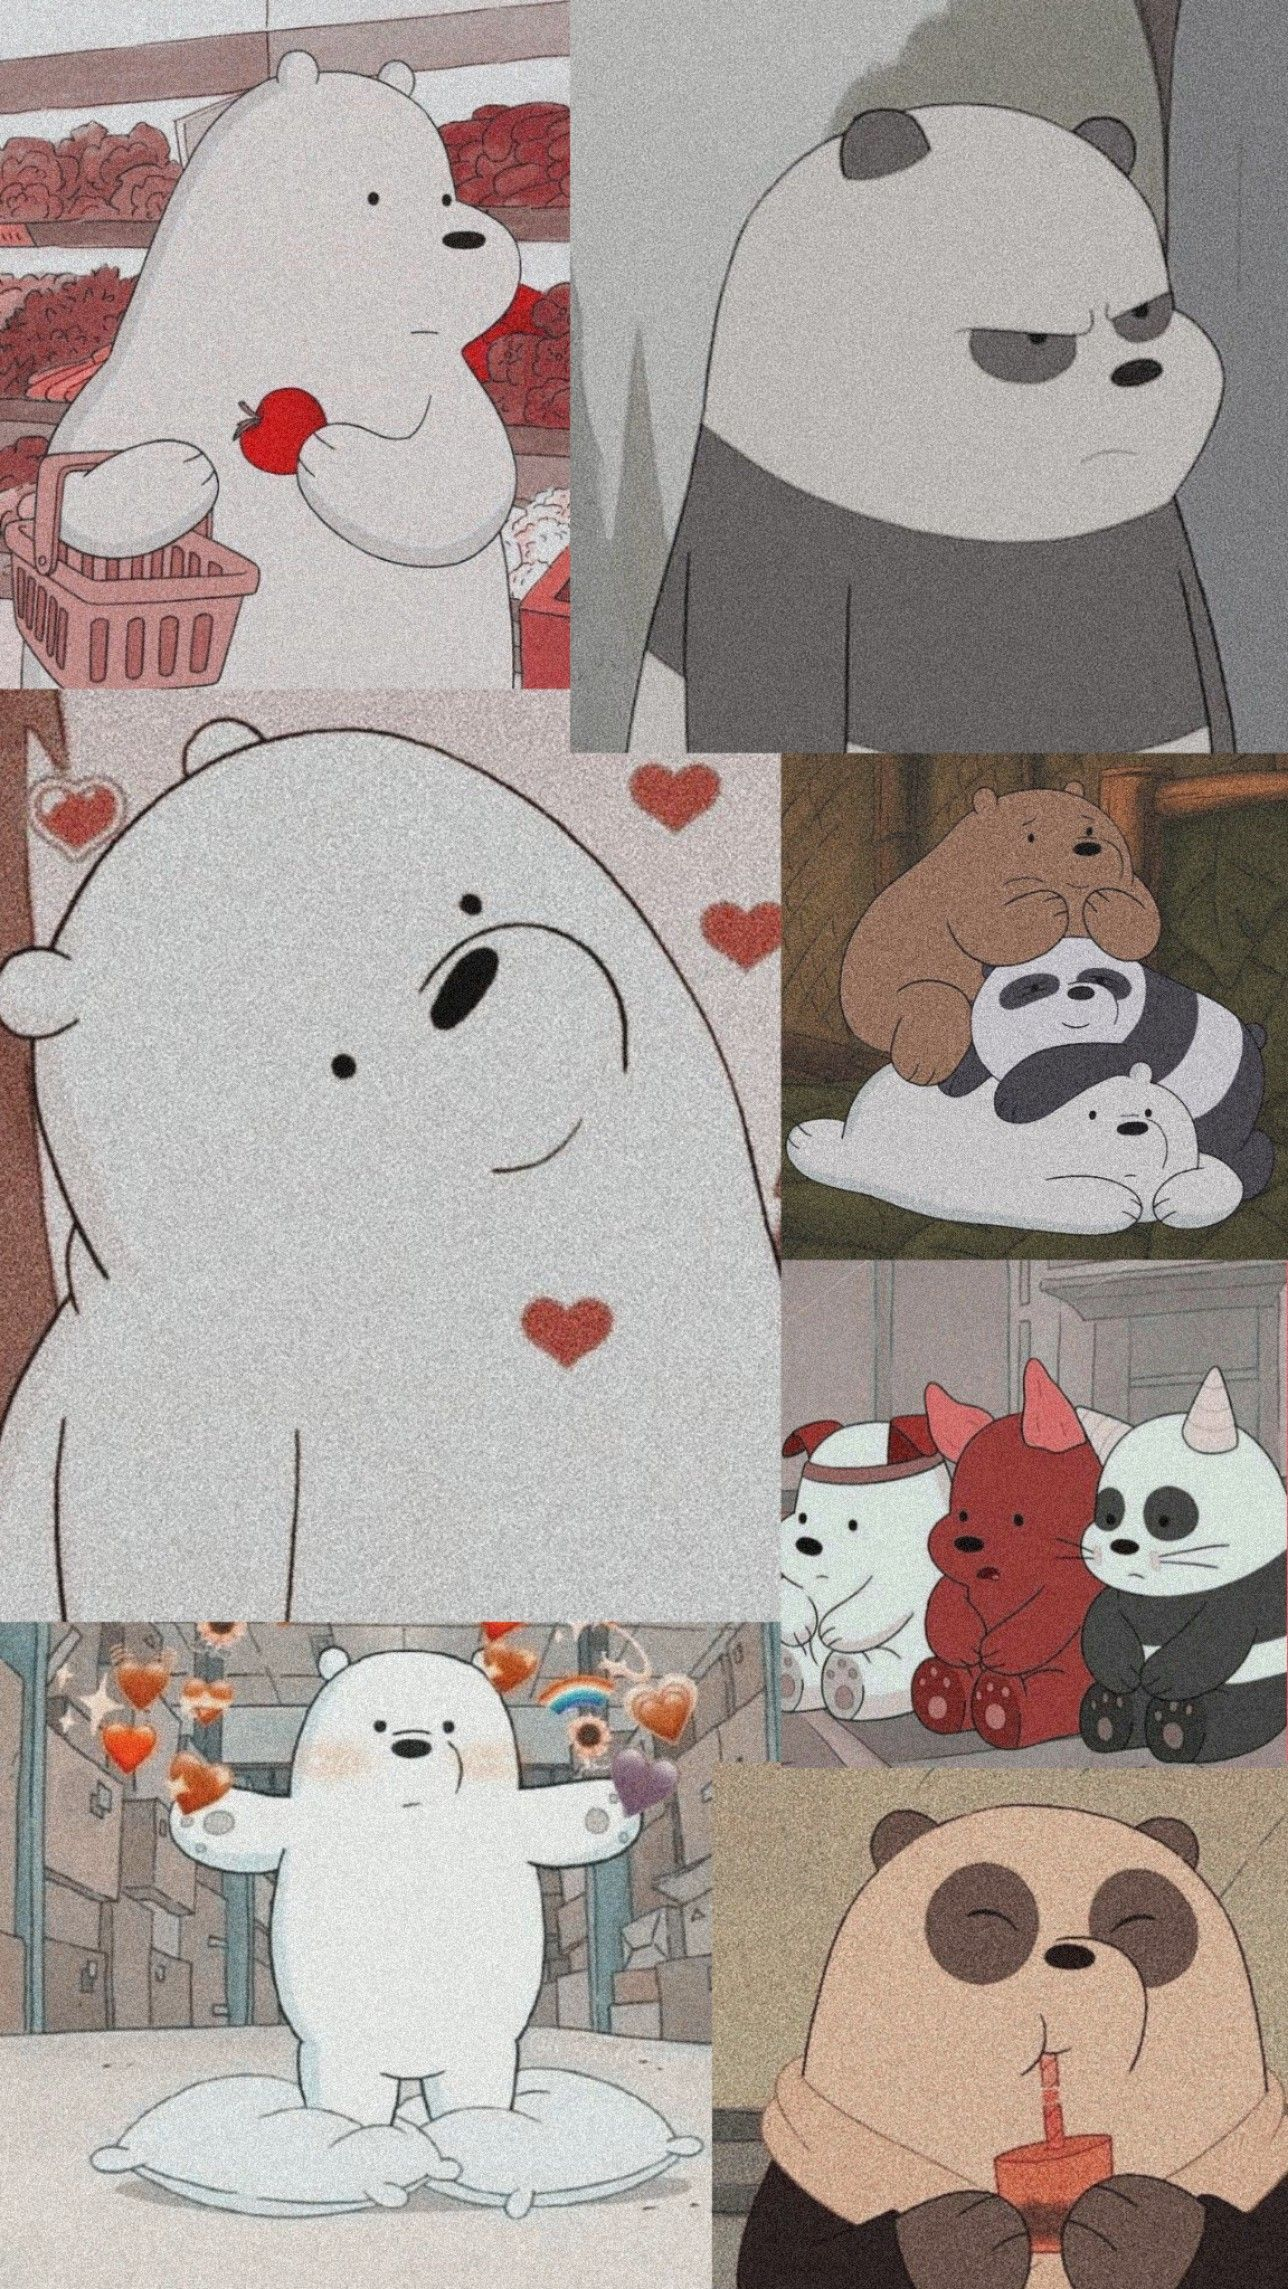 Images By Alexis Talosig On Wallpaper | Bear Wallpaper, We Bare Bears Wallpapers, Iphone Wallpaper Girly 090